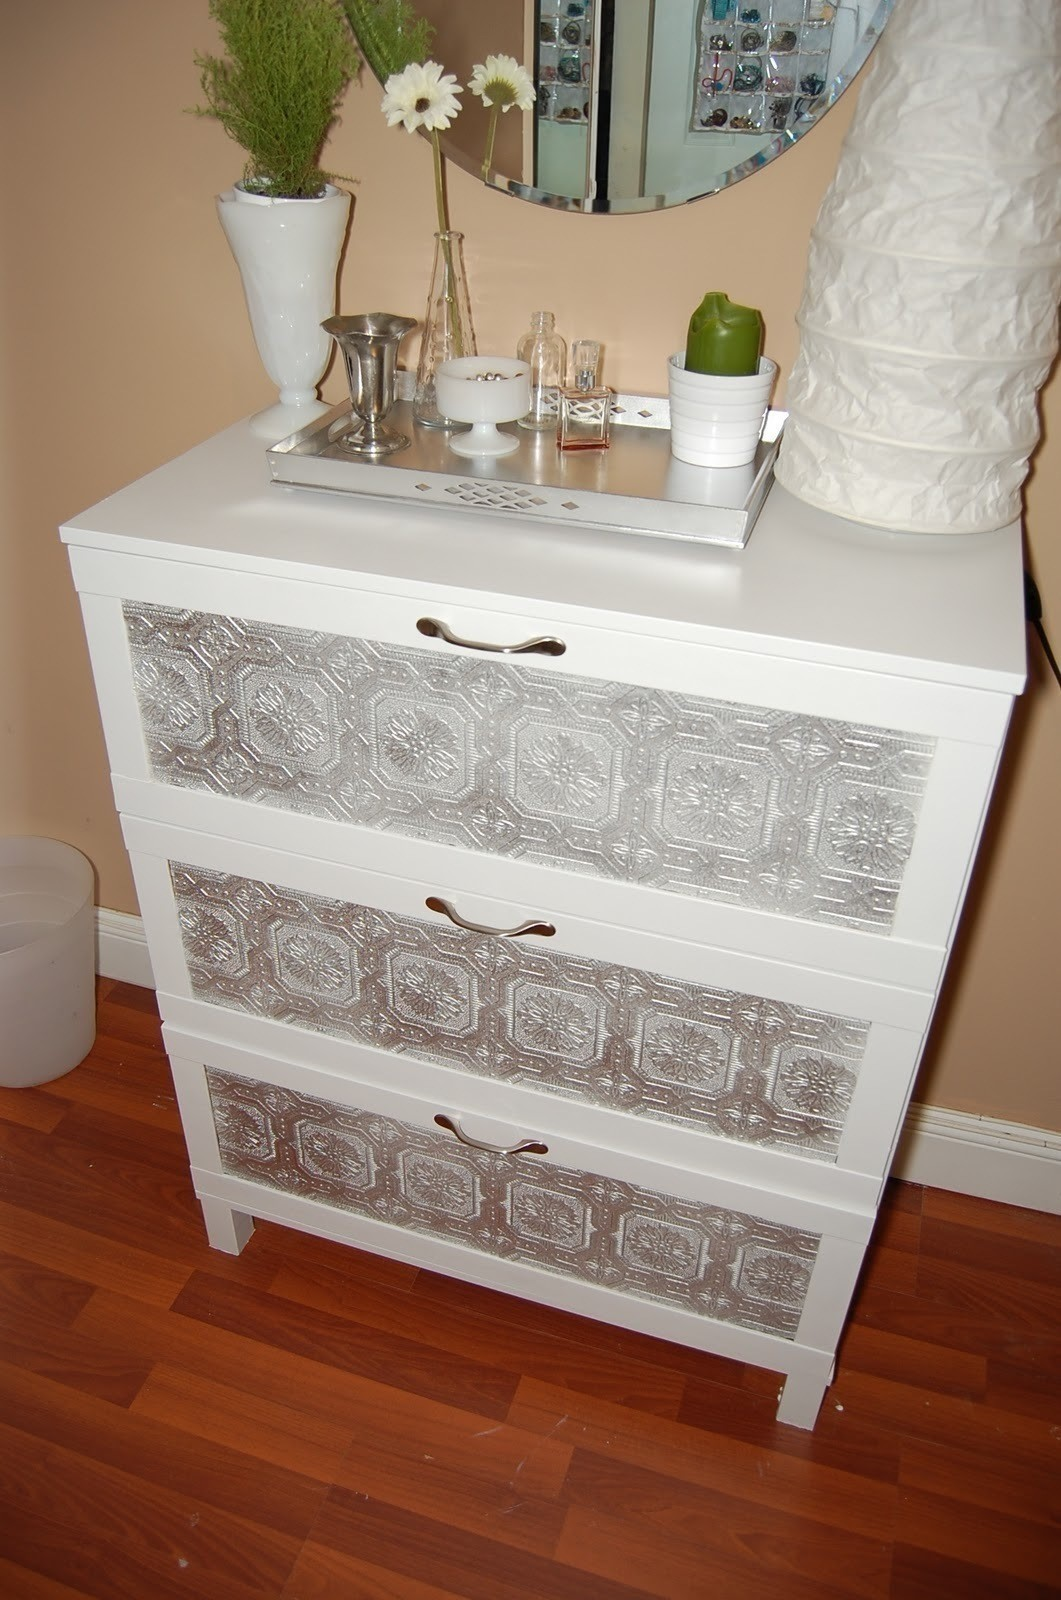 Ikea Dresser Hack  A Drawer  Decorating on Cut Out  Keep  Creation by Amber W